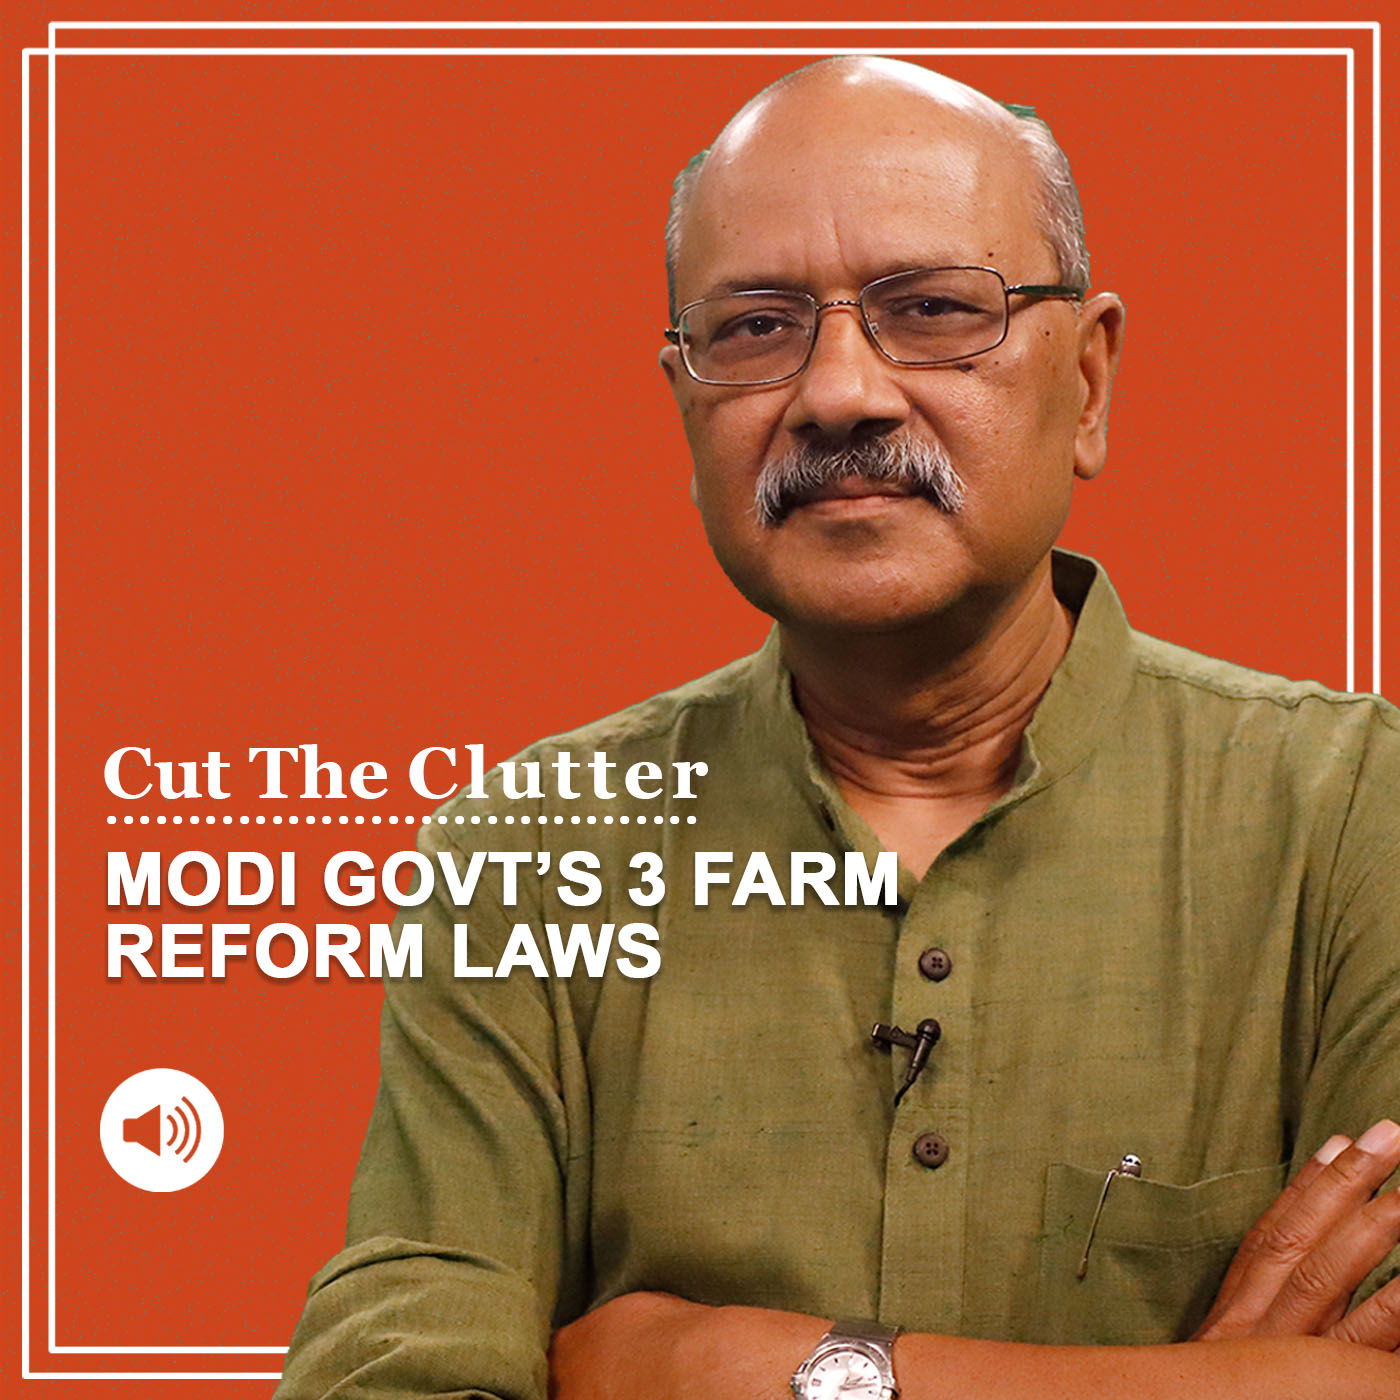 Cut The Clutter: What Modi Govt's 3 Agriculture reform bills mean, political controversy & hypocrisy around these